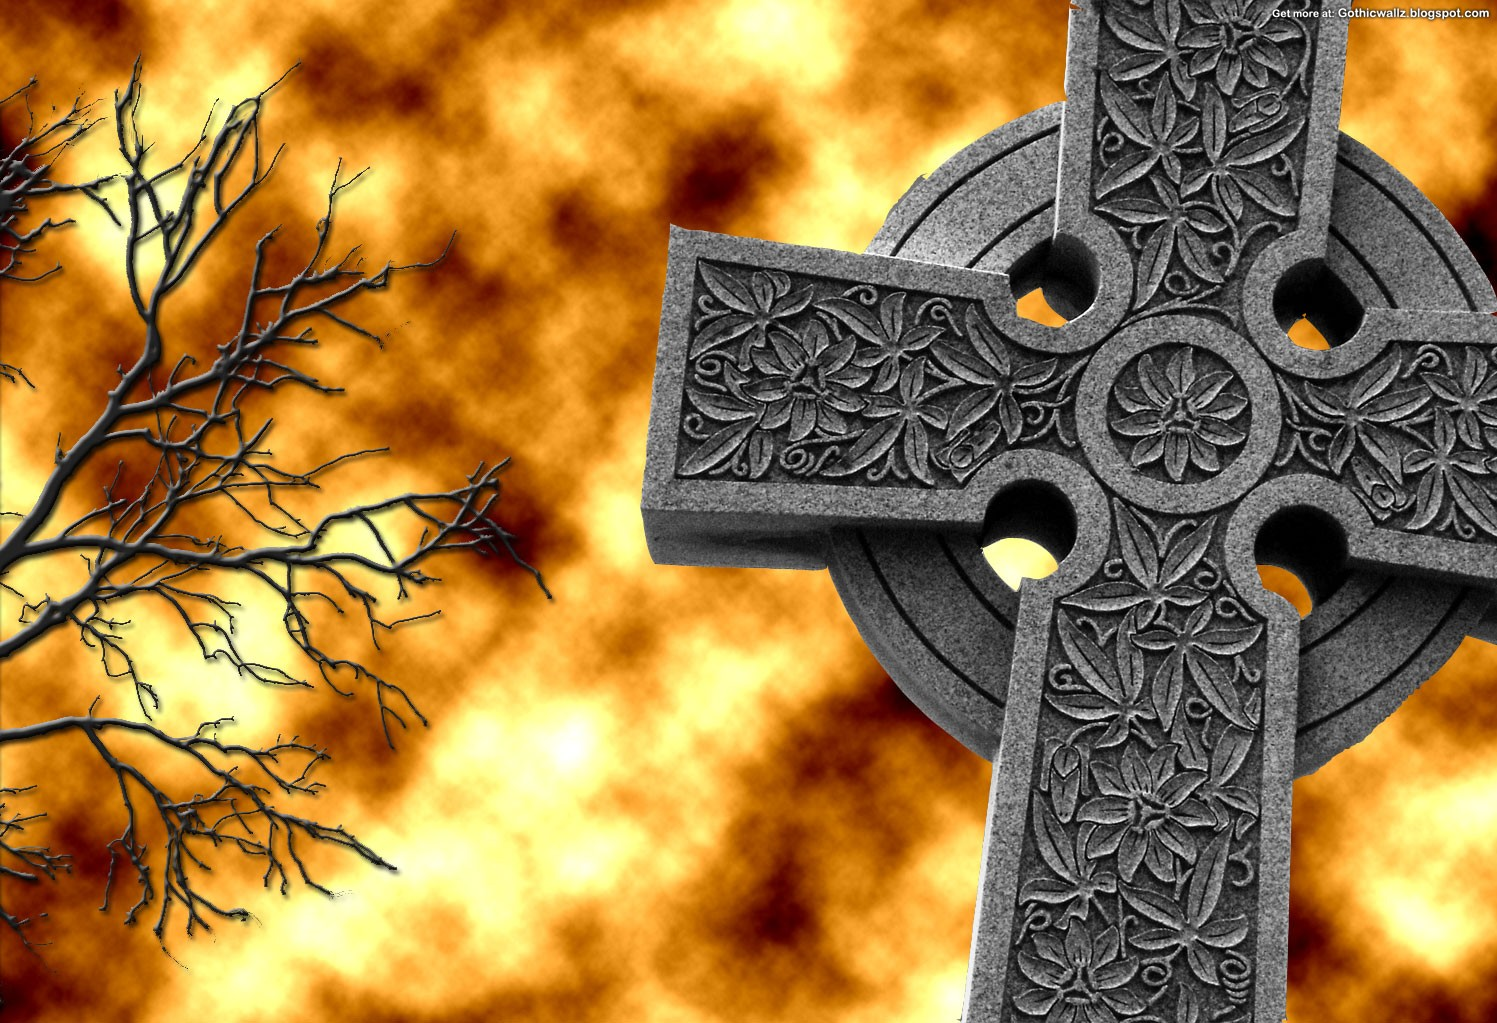 Gothicwallz-Cross.jpg